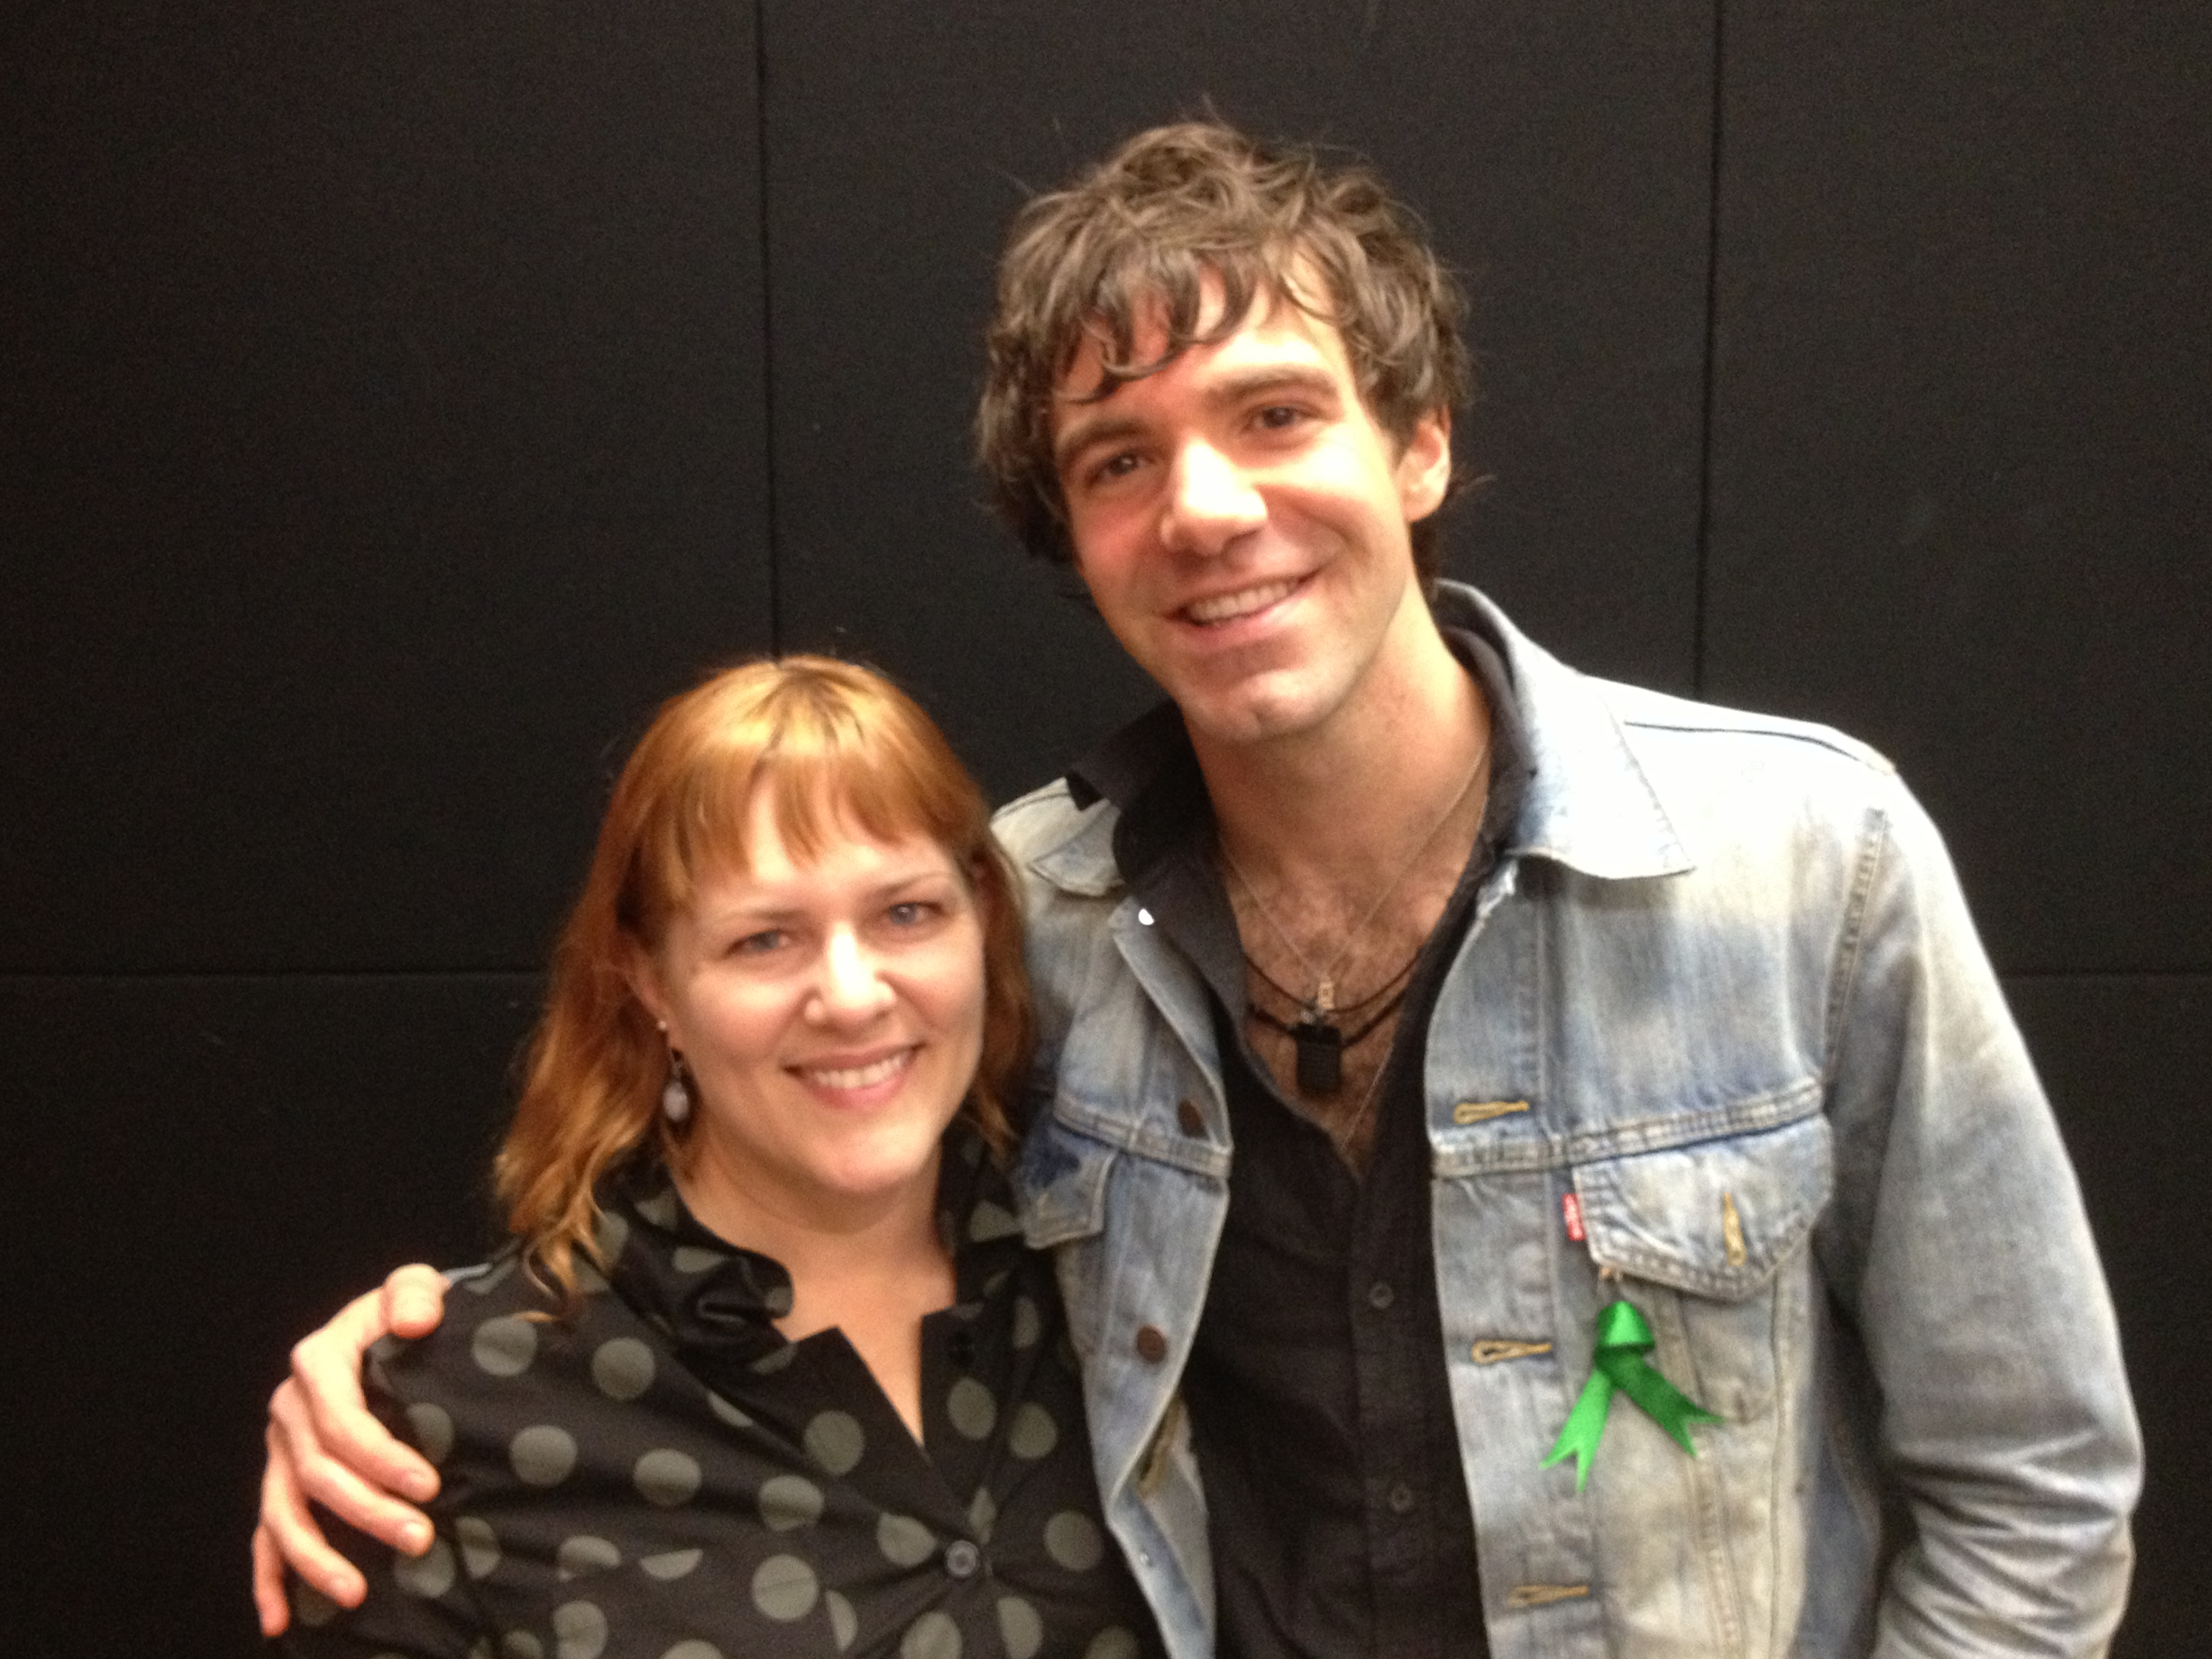 stephen kellogg and joan may 2013